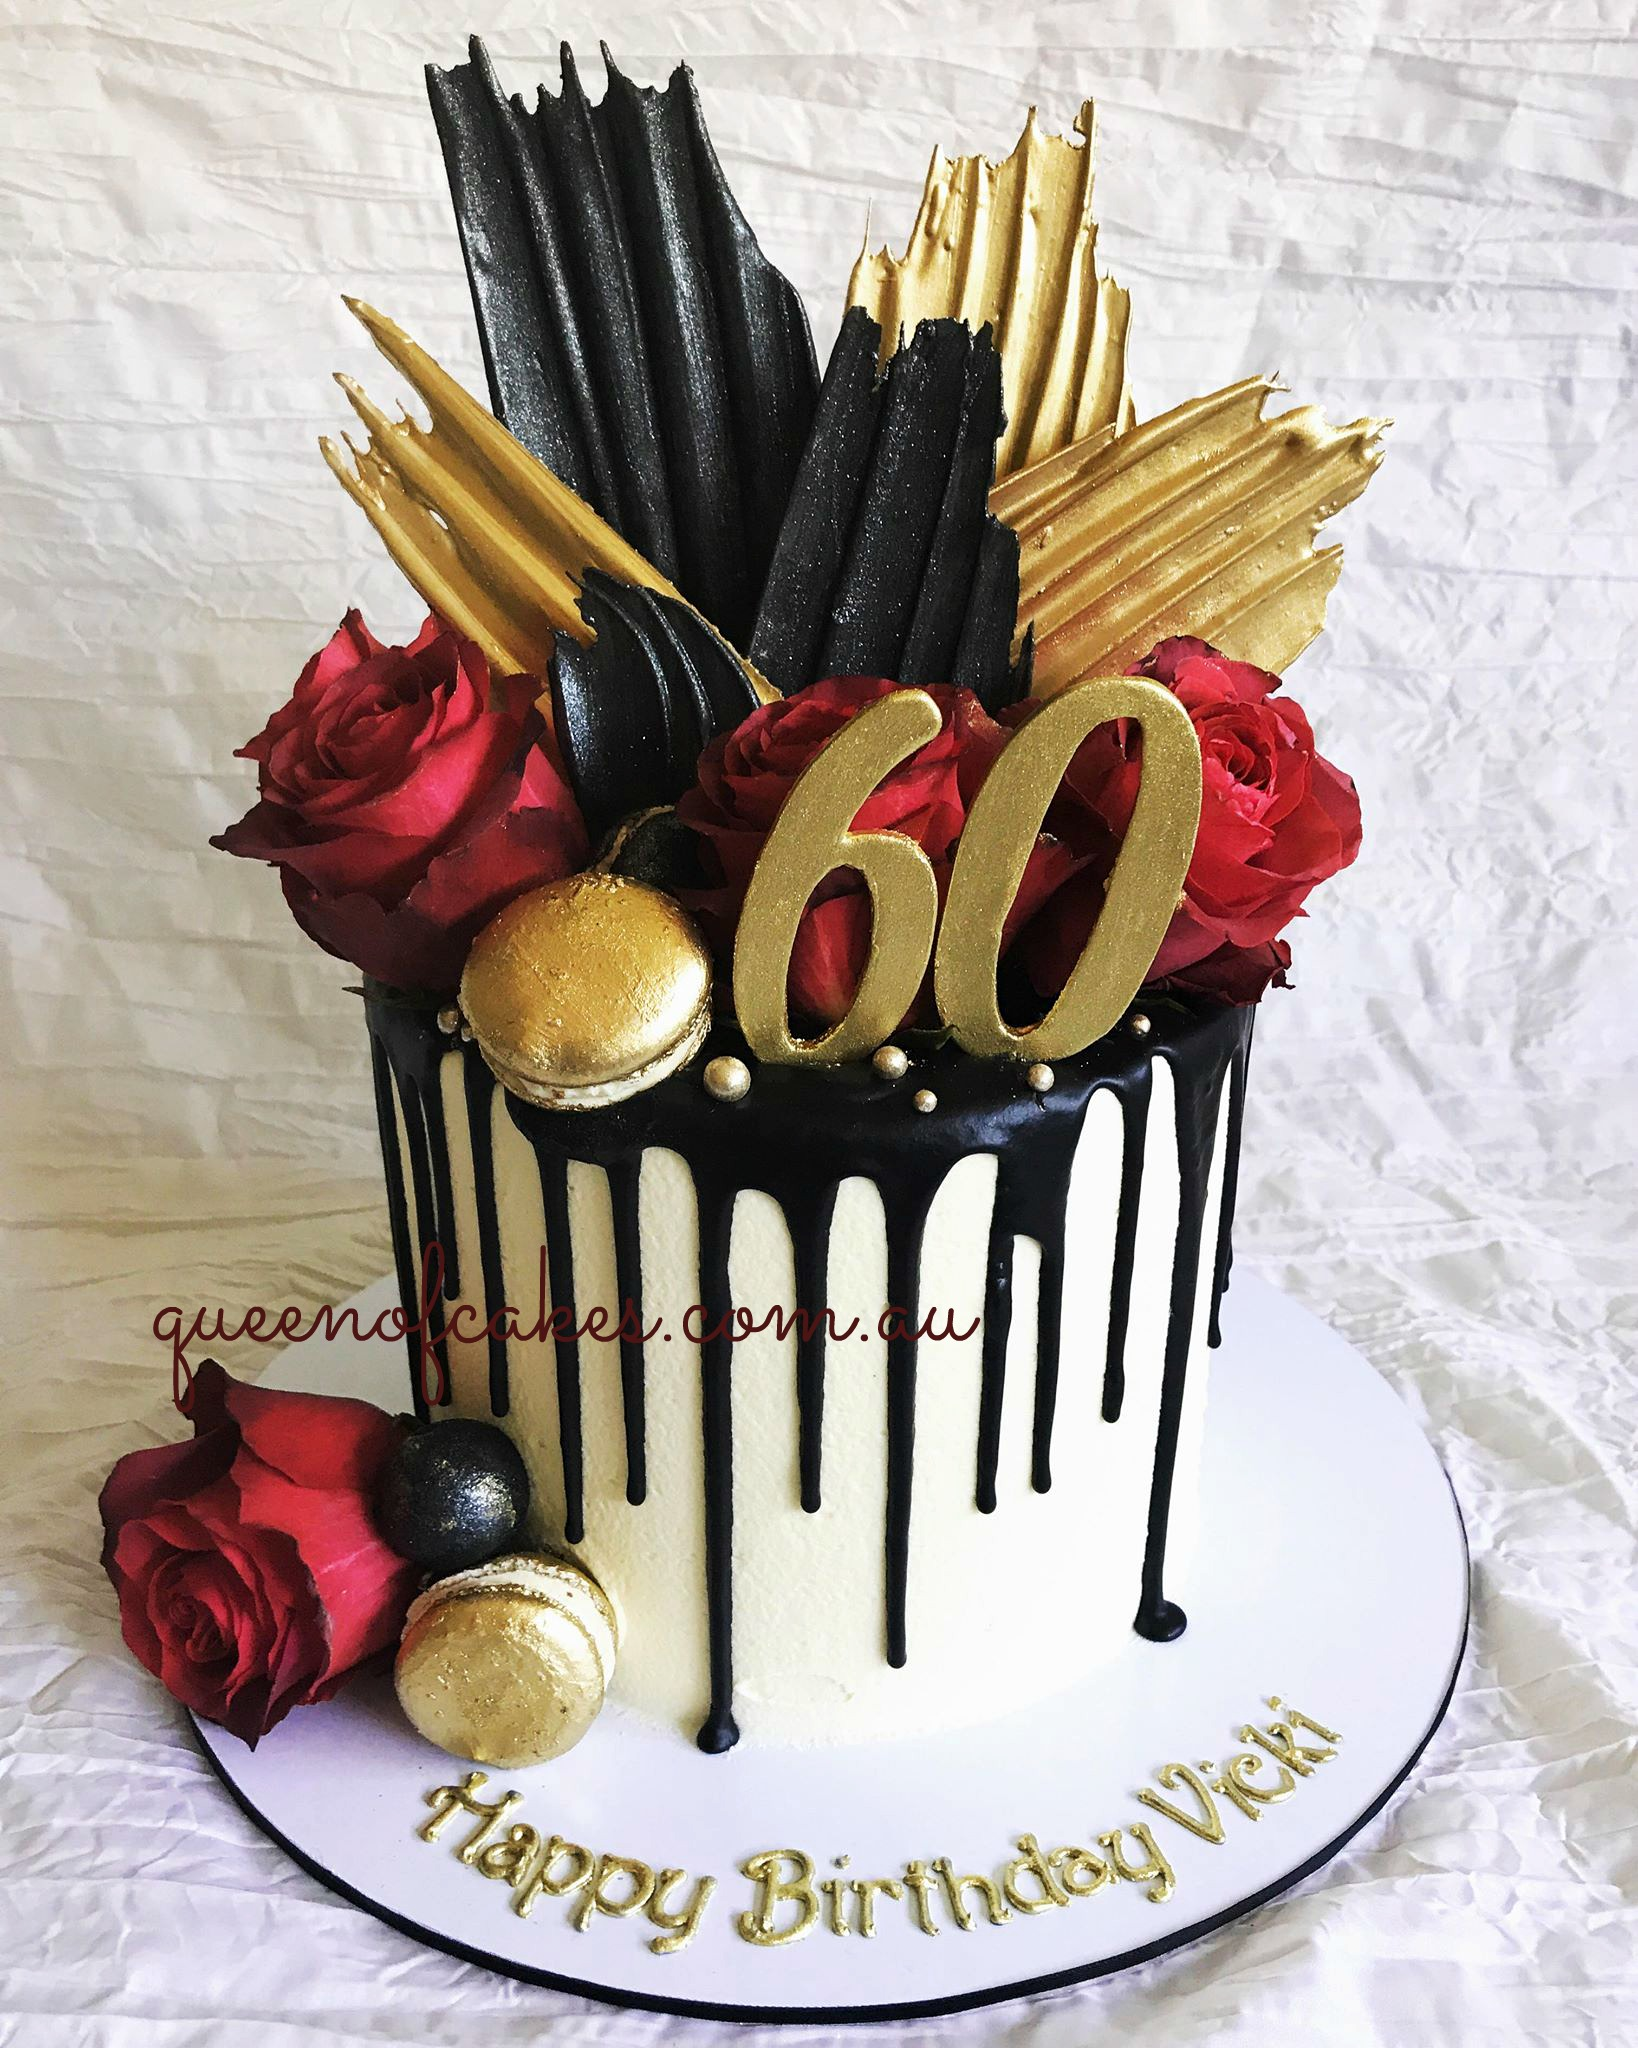 Marvelous Birthday Cakes Queen Of Cakes Funny Birthday Cards Online Bapapcheapnameinfo